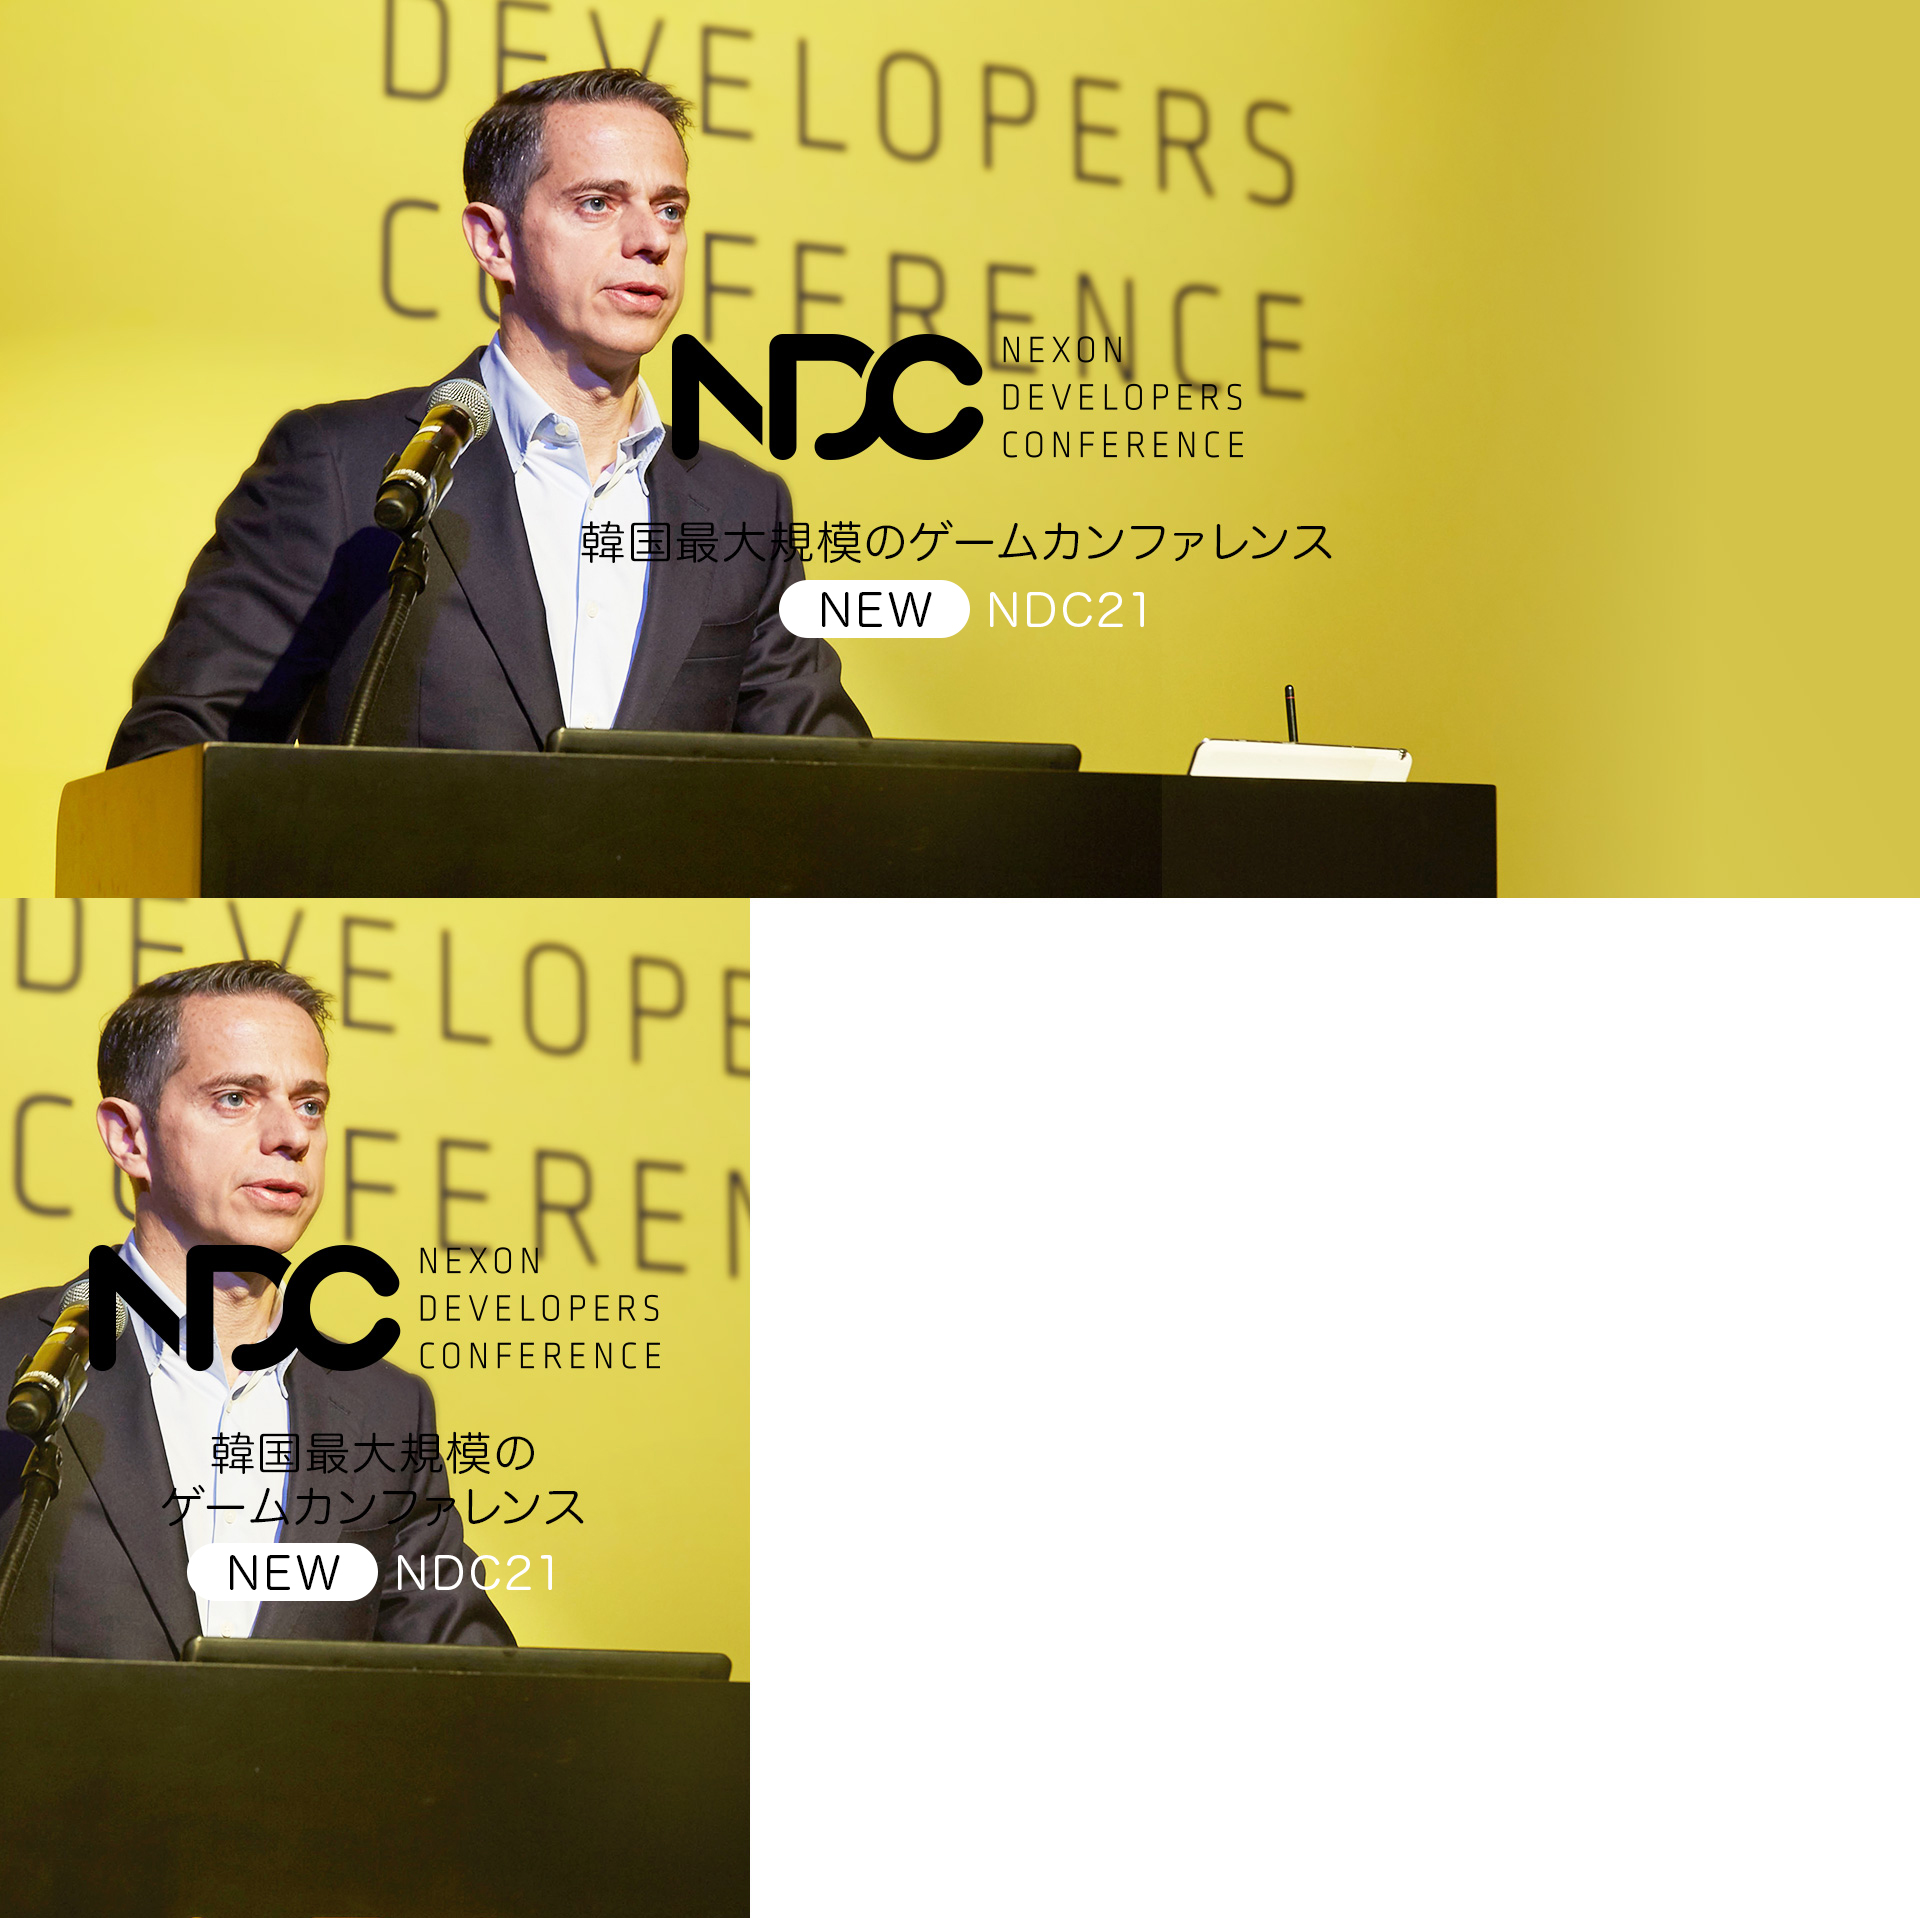 Nexon Developers Conference (NDC)